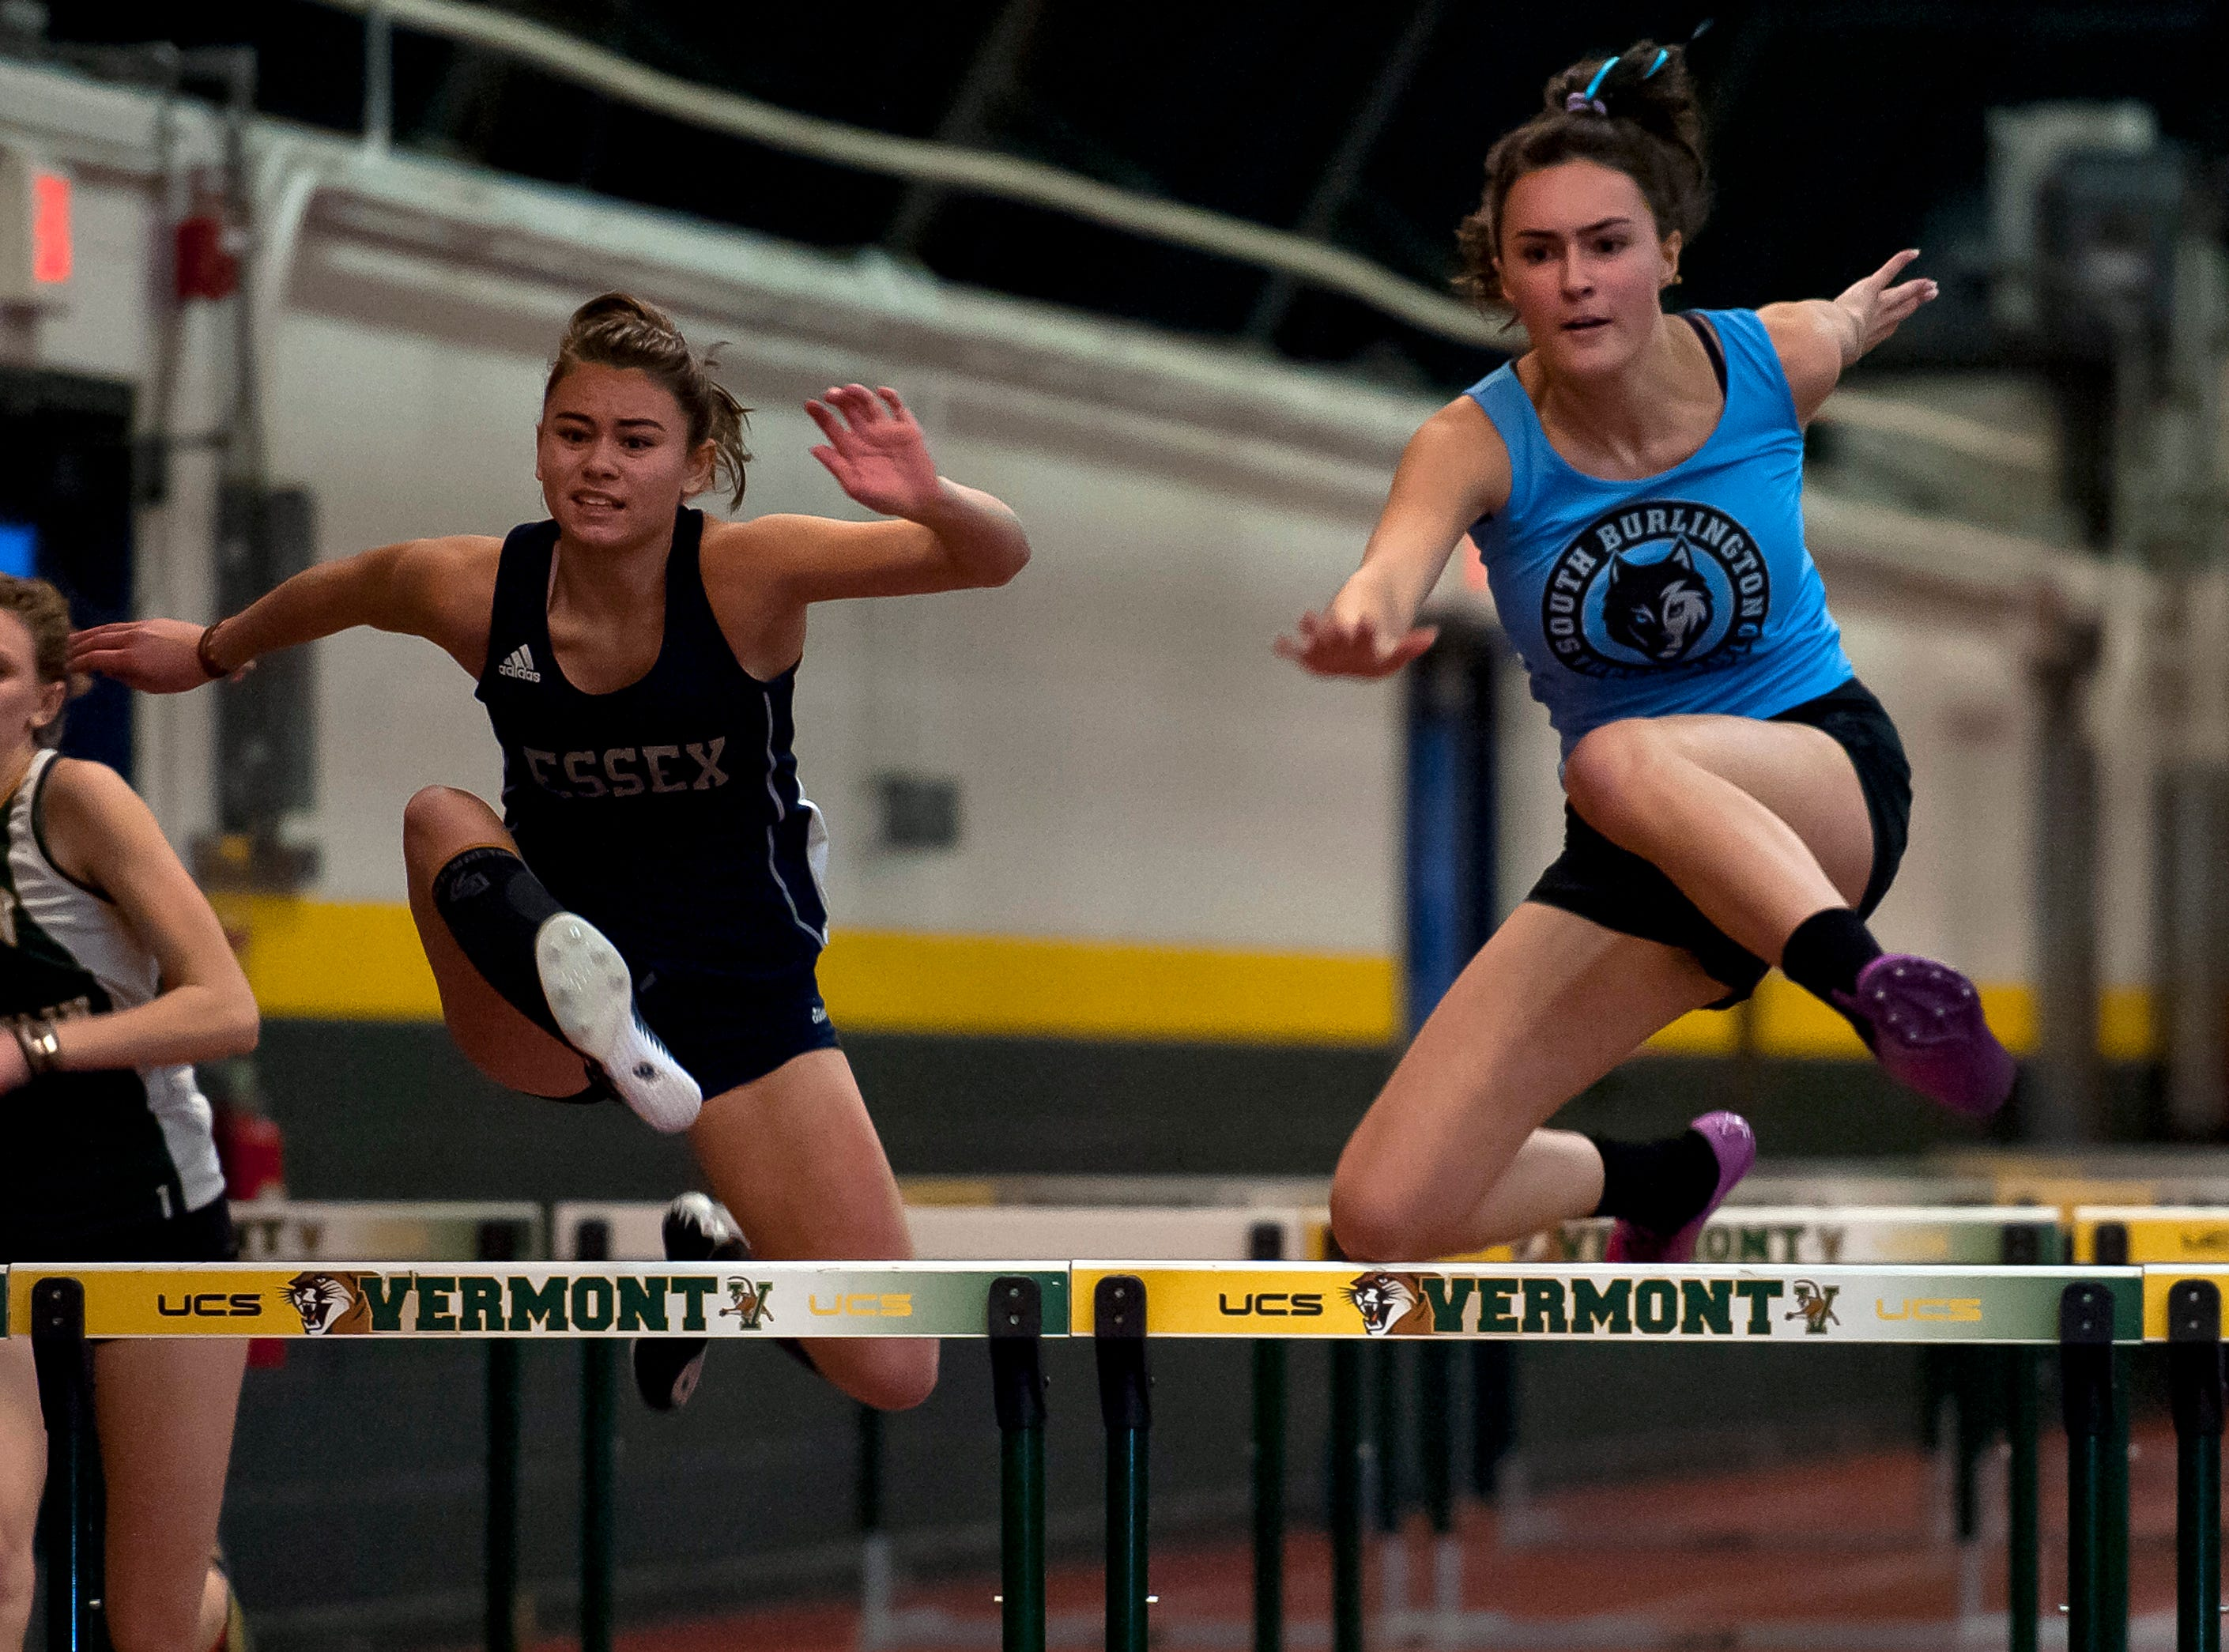 South Burlington's Teresa O'Leary, right, and Essex's Annika Simard approach the final hurdle in the girls 55 hurdles at the high school indoor track state championships at the University of Vermont on Saturday.